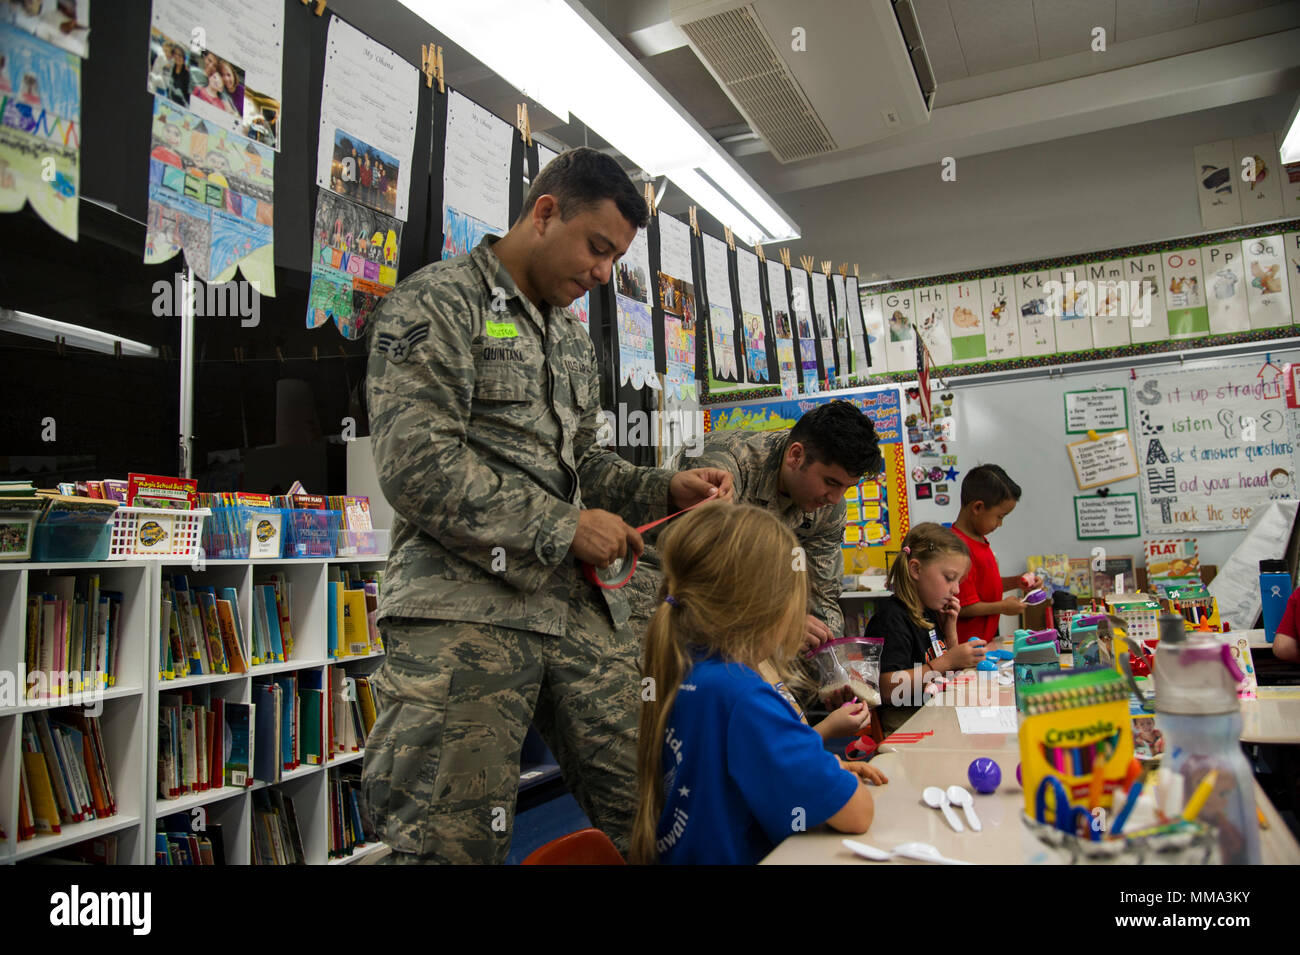 Senior Airman Francisco Quintana and Senior Airman Eddy Santibanez, 647th Logistics Readiness Squadron combat mobility team members, help second grade students make maracas at Hickam Elementary School, Joint Base Pearl Harbor-Hickam, Hawaii, Sept. 27, 2017.  Volunteers organized a variety of events for the students in support of Hispanic Heritage Month.  Hispanic Heritage Month is observed from 15 Sept.-15 Oct. to celebrate the history, culture and contributions of American citizens whose ancestors came from Spain, Mexico, the Caribbean and Central and South America. (U.S. Air Force photo by T - Stock Image